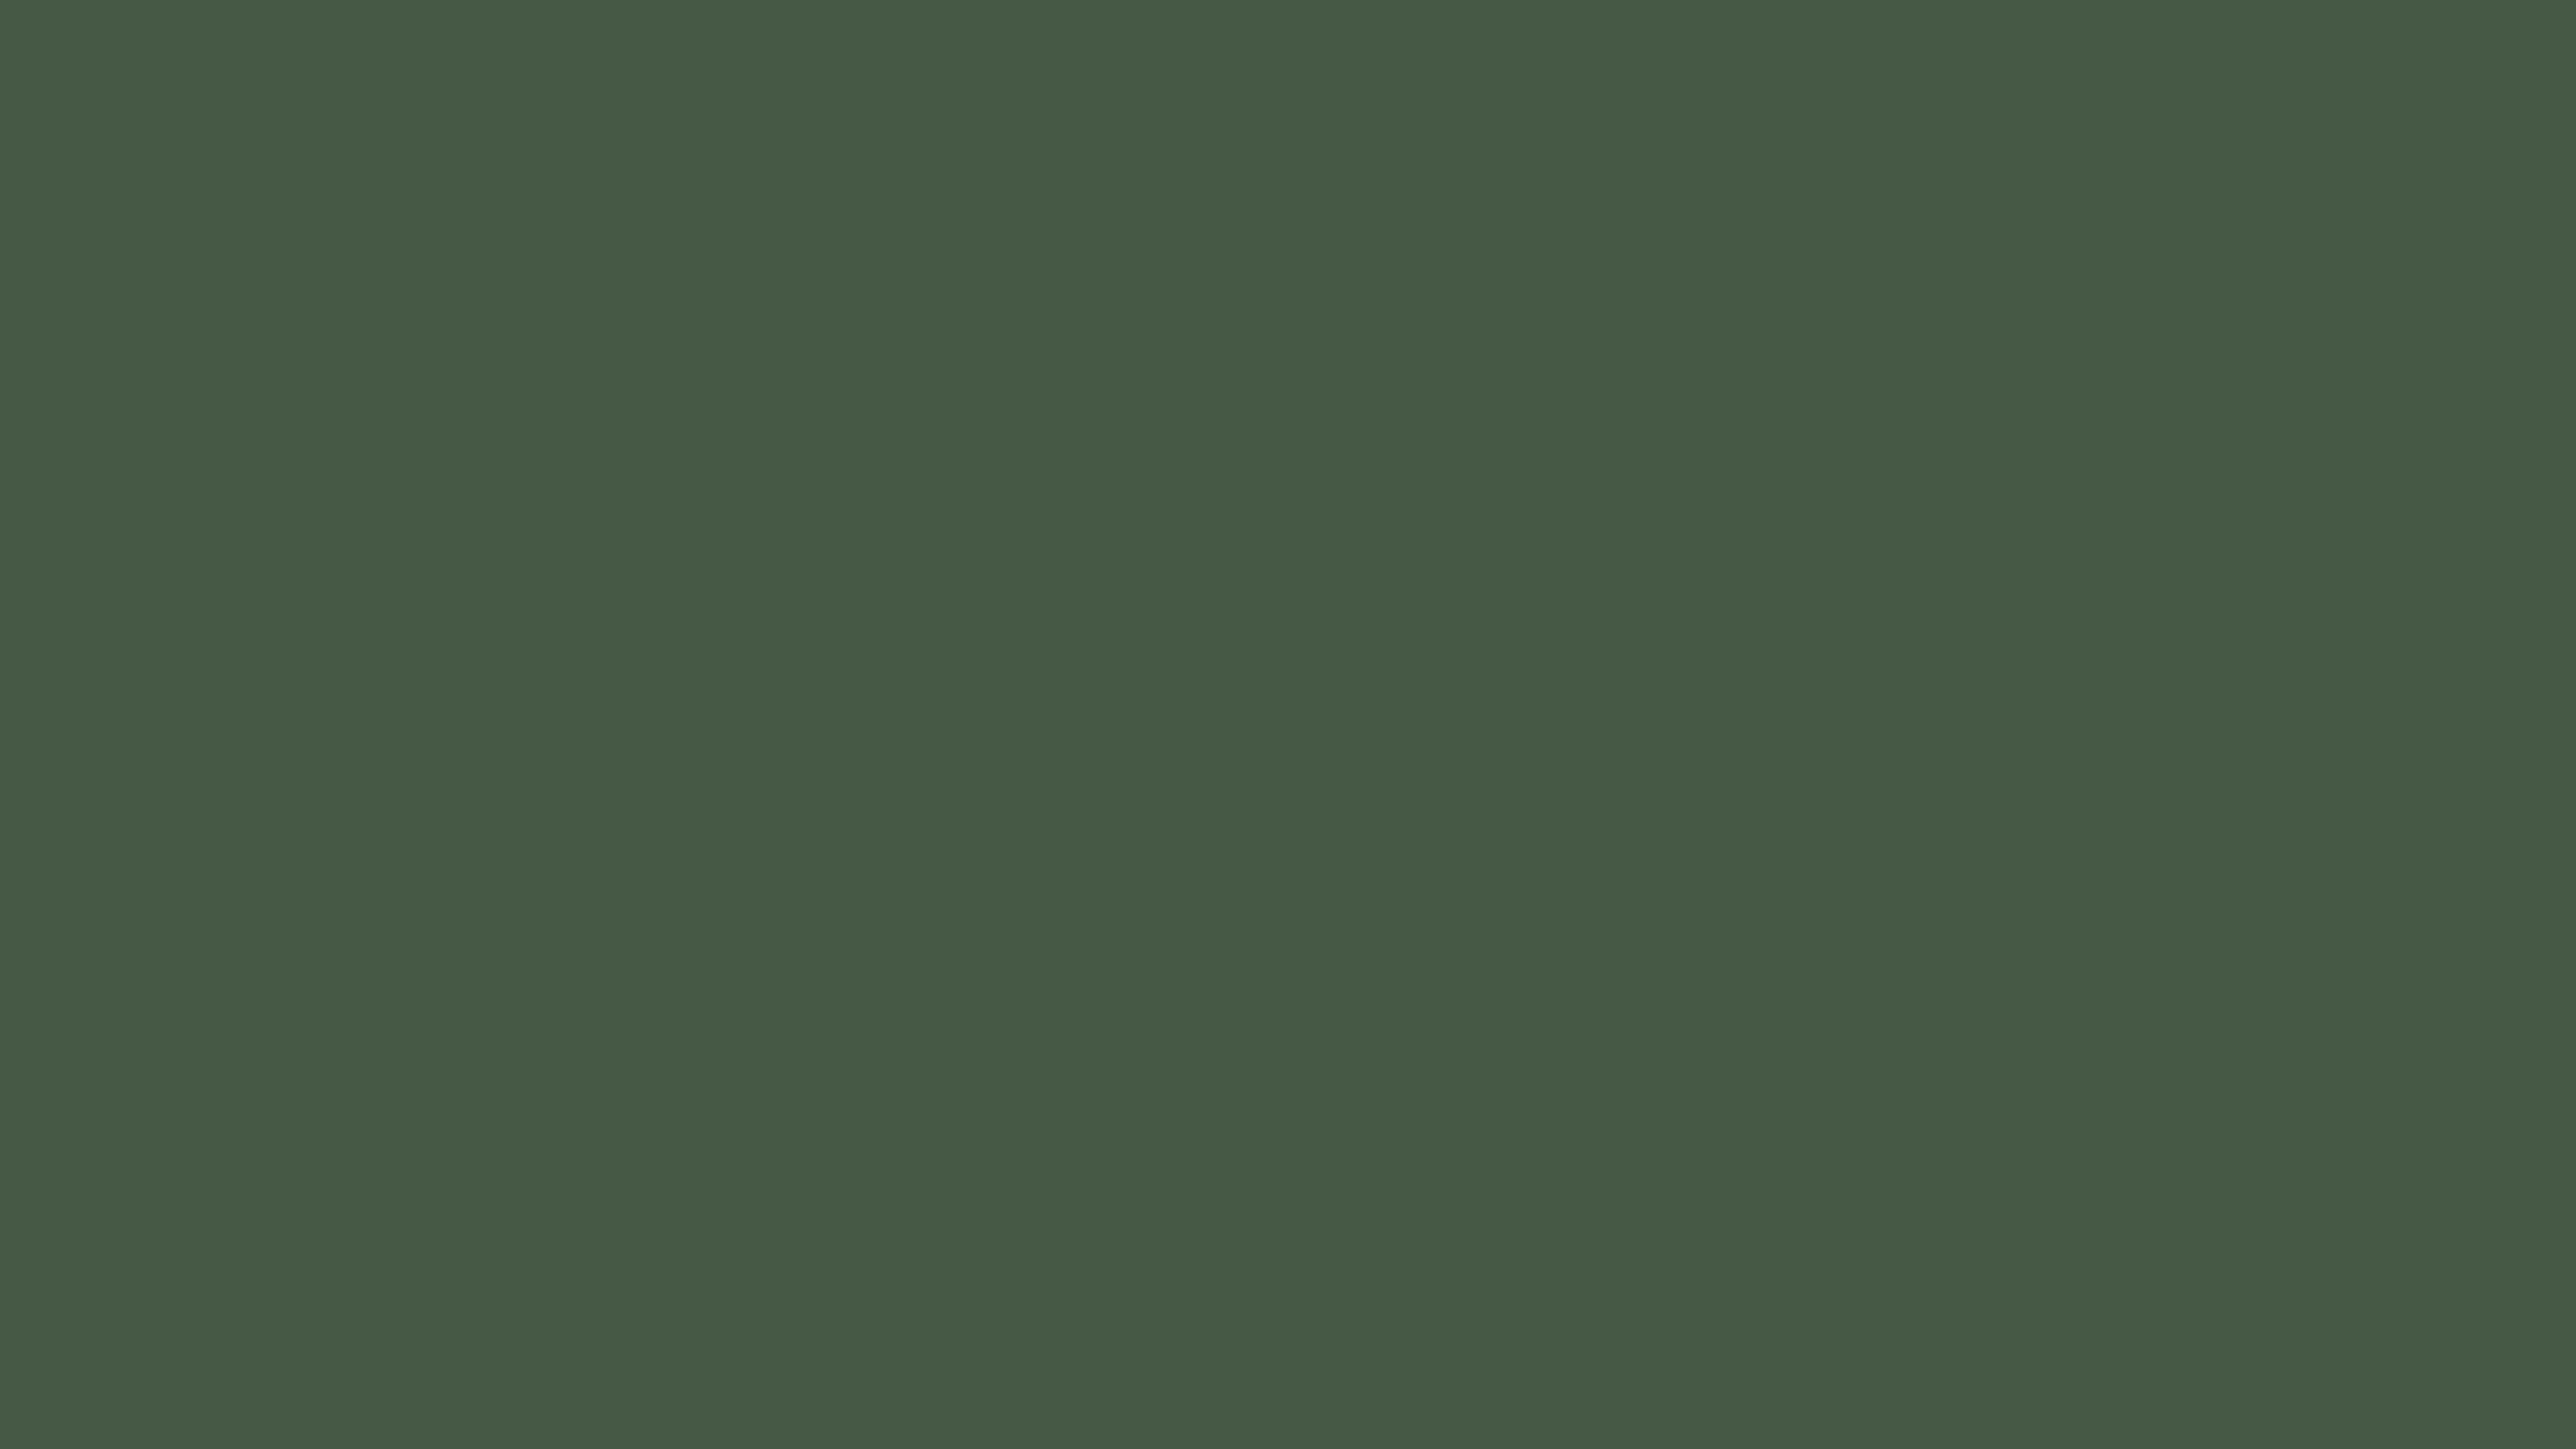 5120x2880 Gray-asparagus Solid Color Background